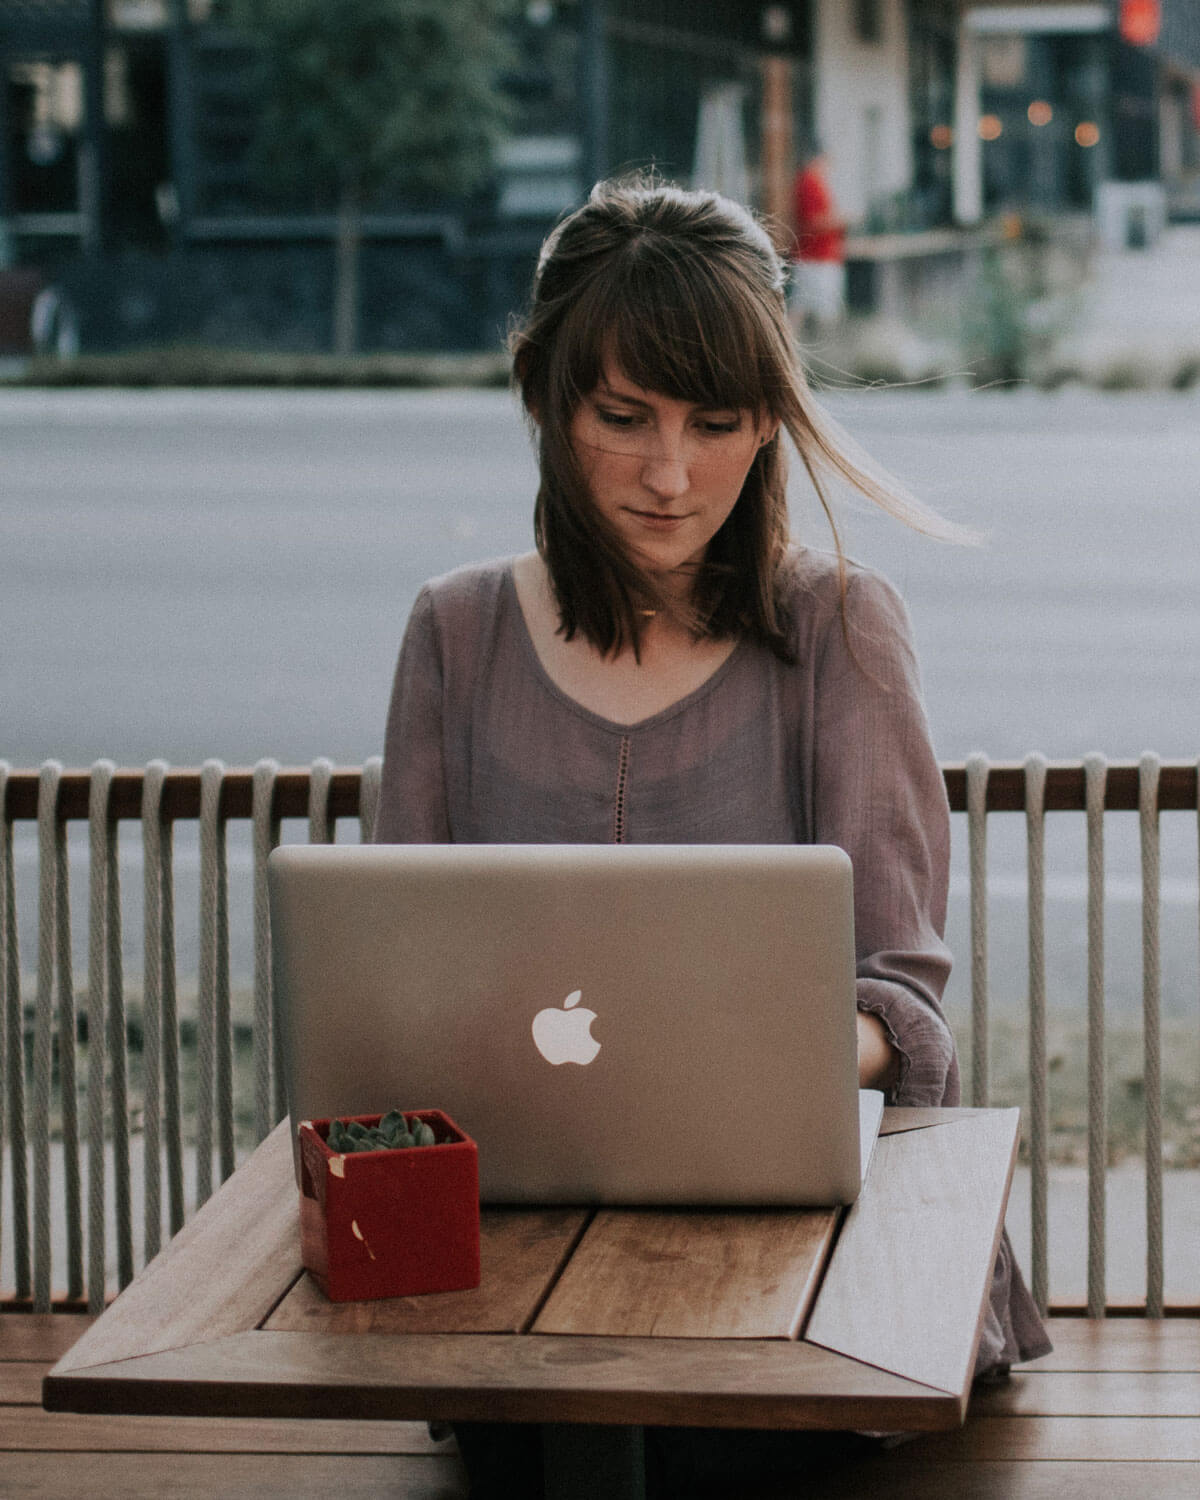 Woman at a Apple Macbook